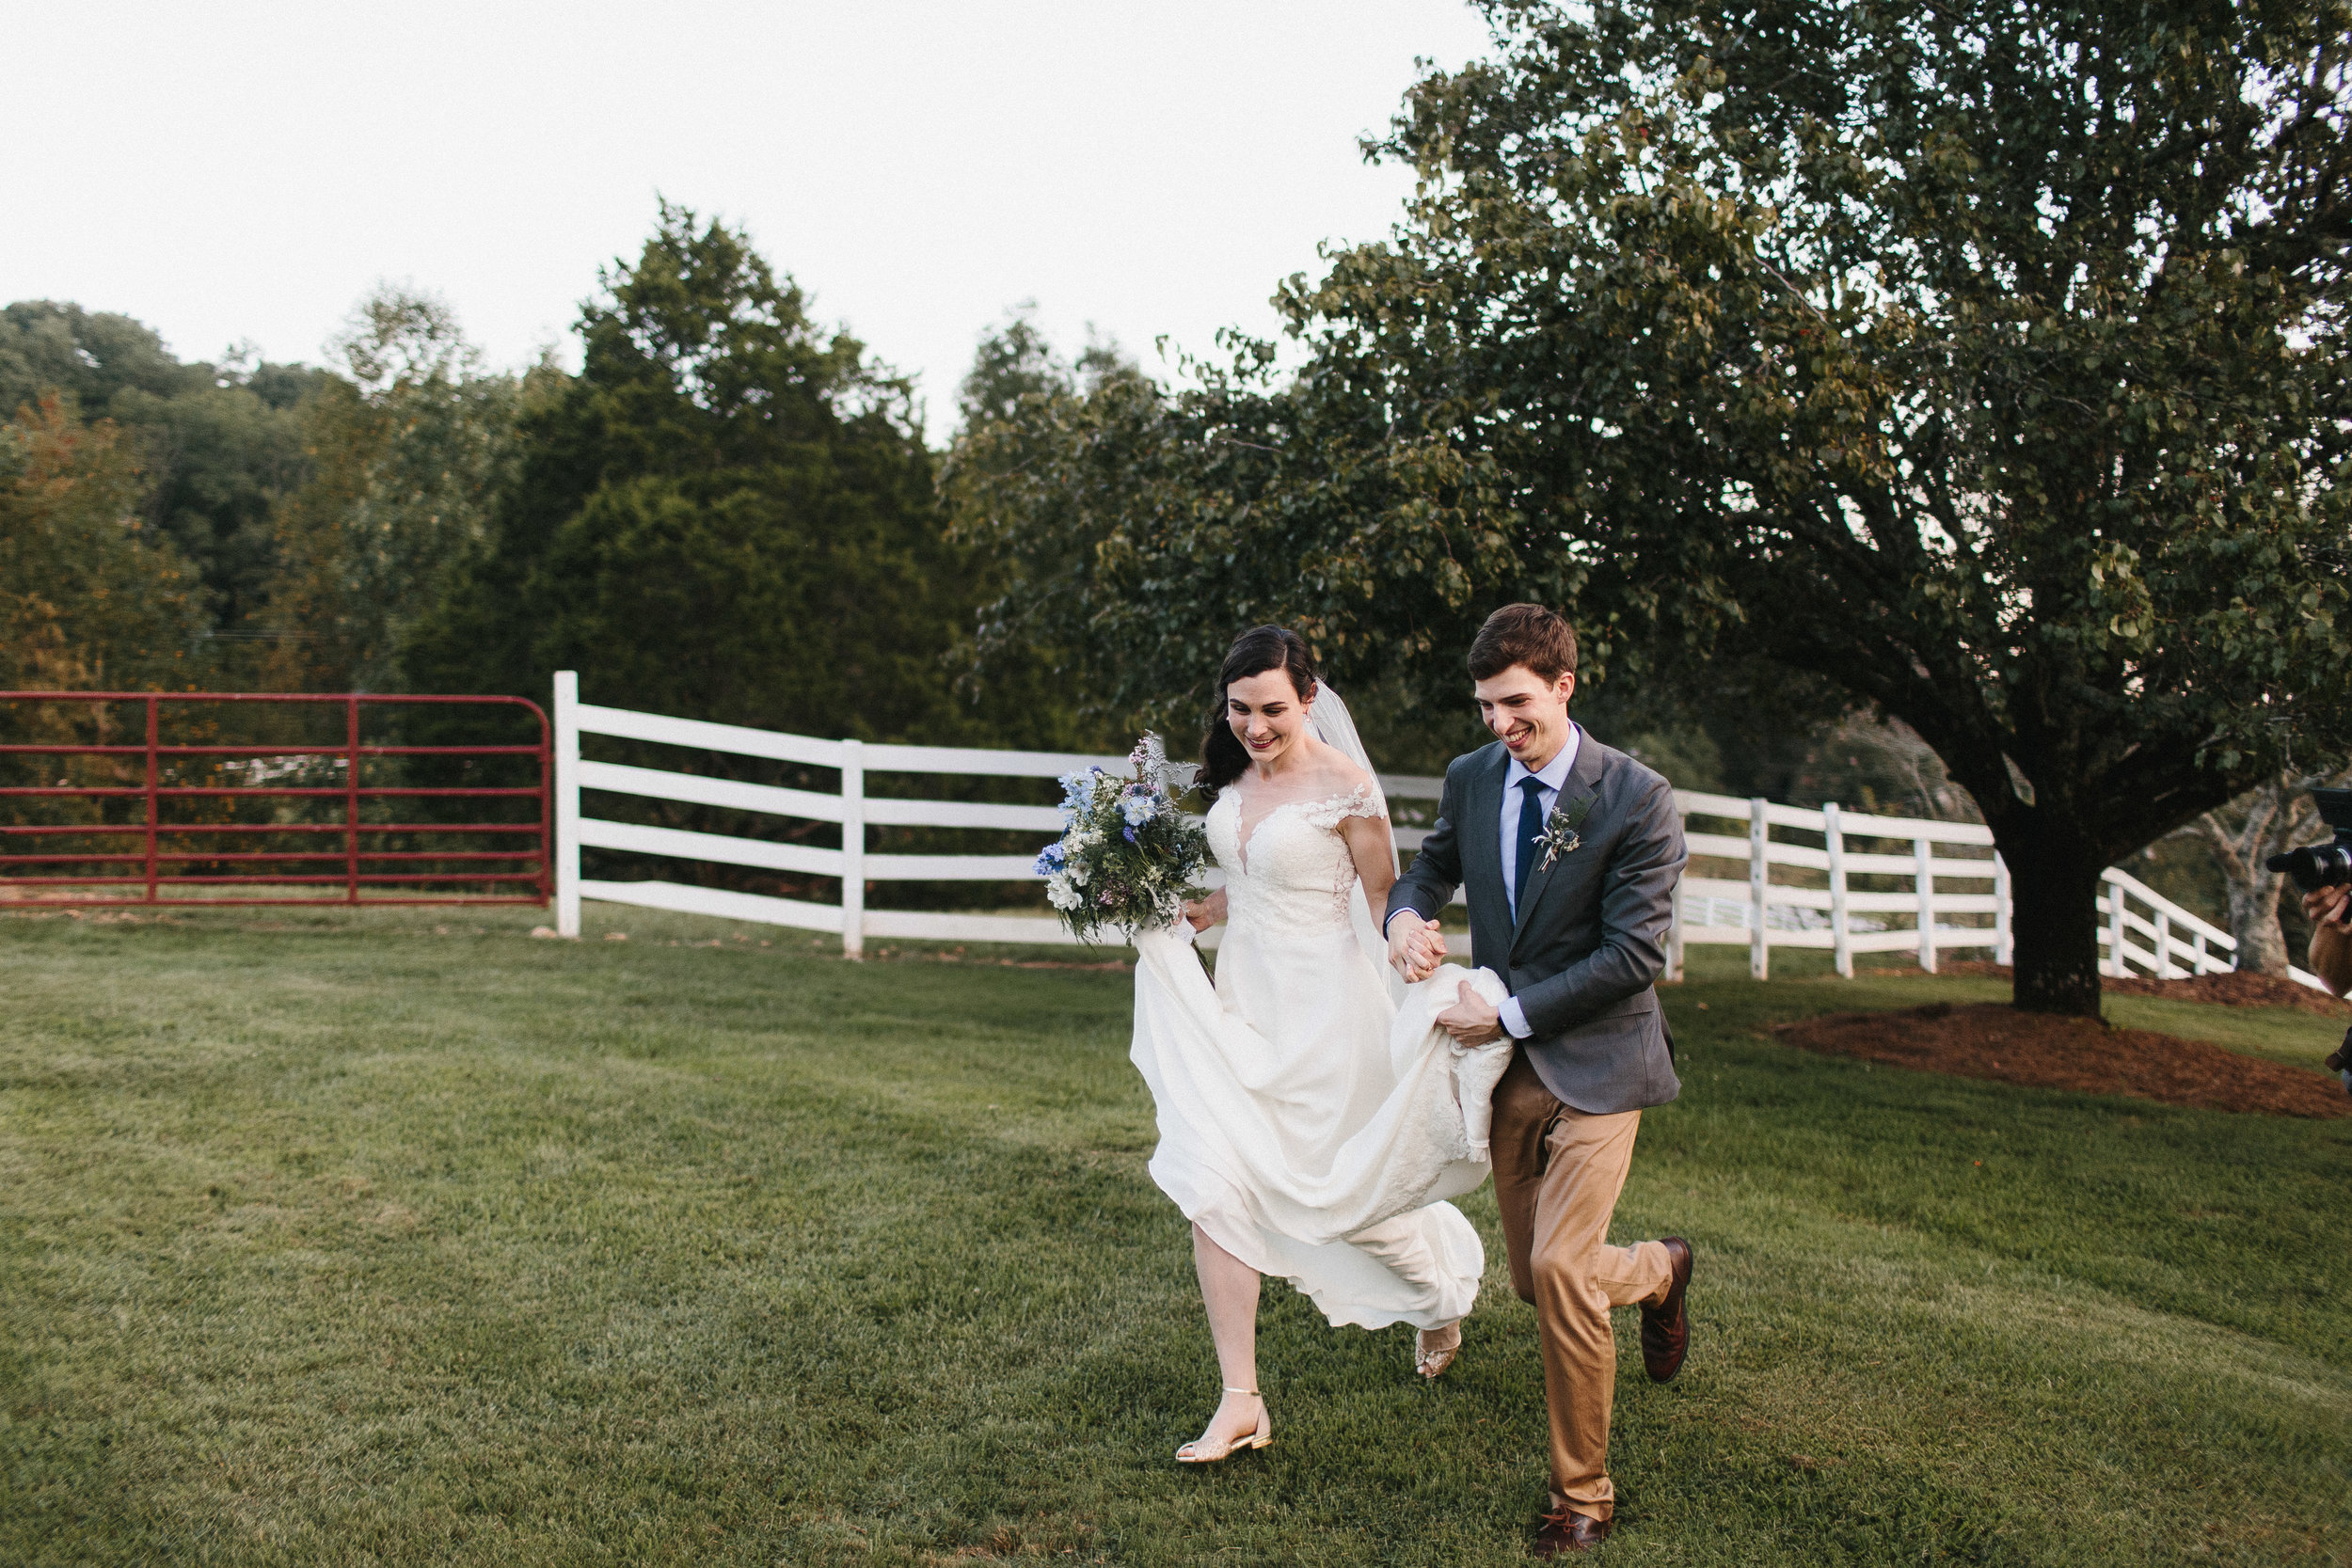 cleveland_georgia_mountain_laurel_farm_natural_classic_timeless_documentary_candid_wedding_emotional_photojournalism_river_west_1786.jpg